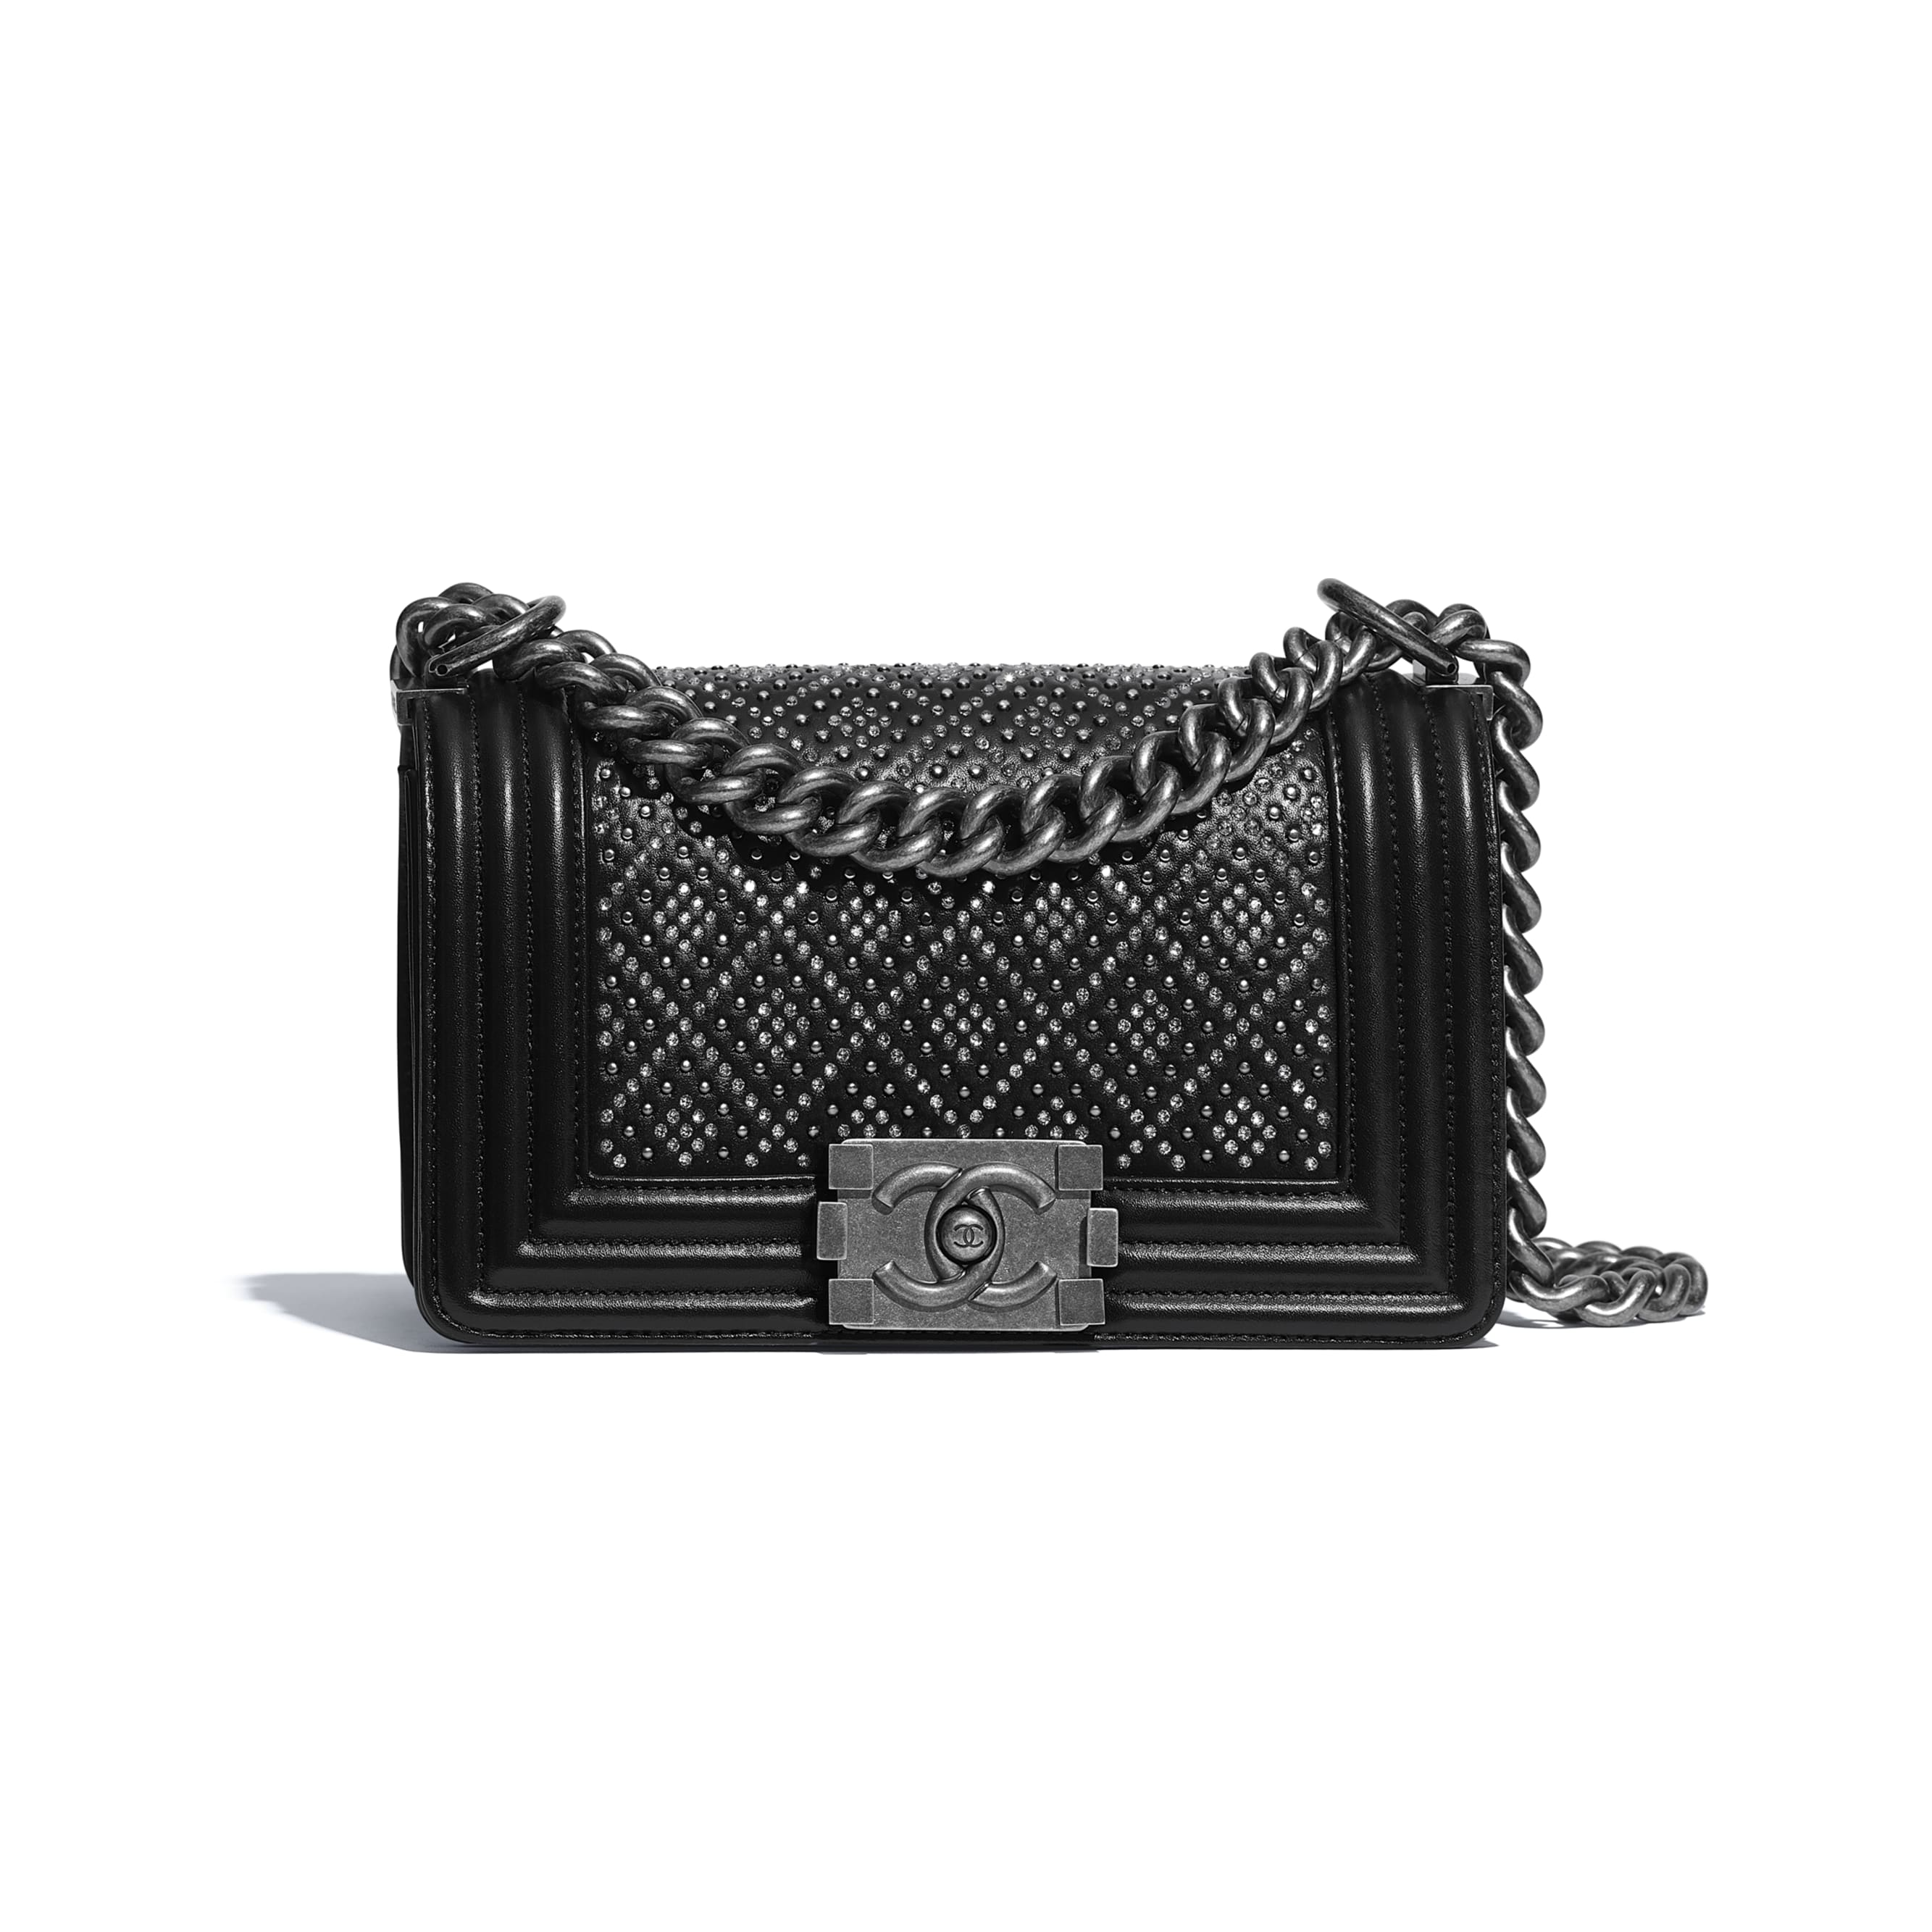 Small BOY CHANEL Handbag - Black - Calfskin, Studs, Diamanté & Ruthenium-Finish Metal - CHANEL - Default view - see standard sized version